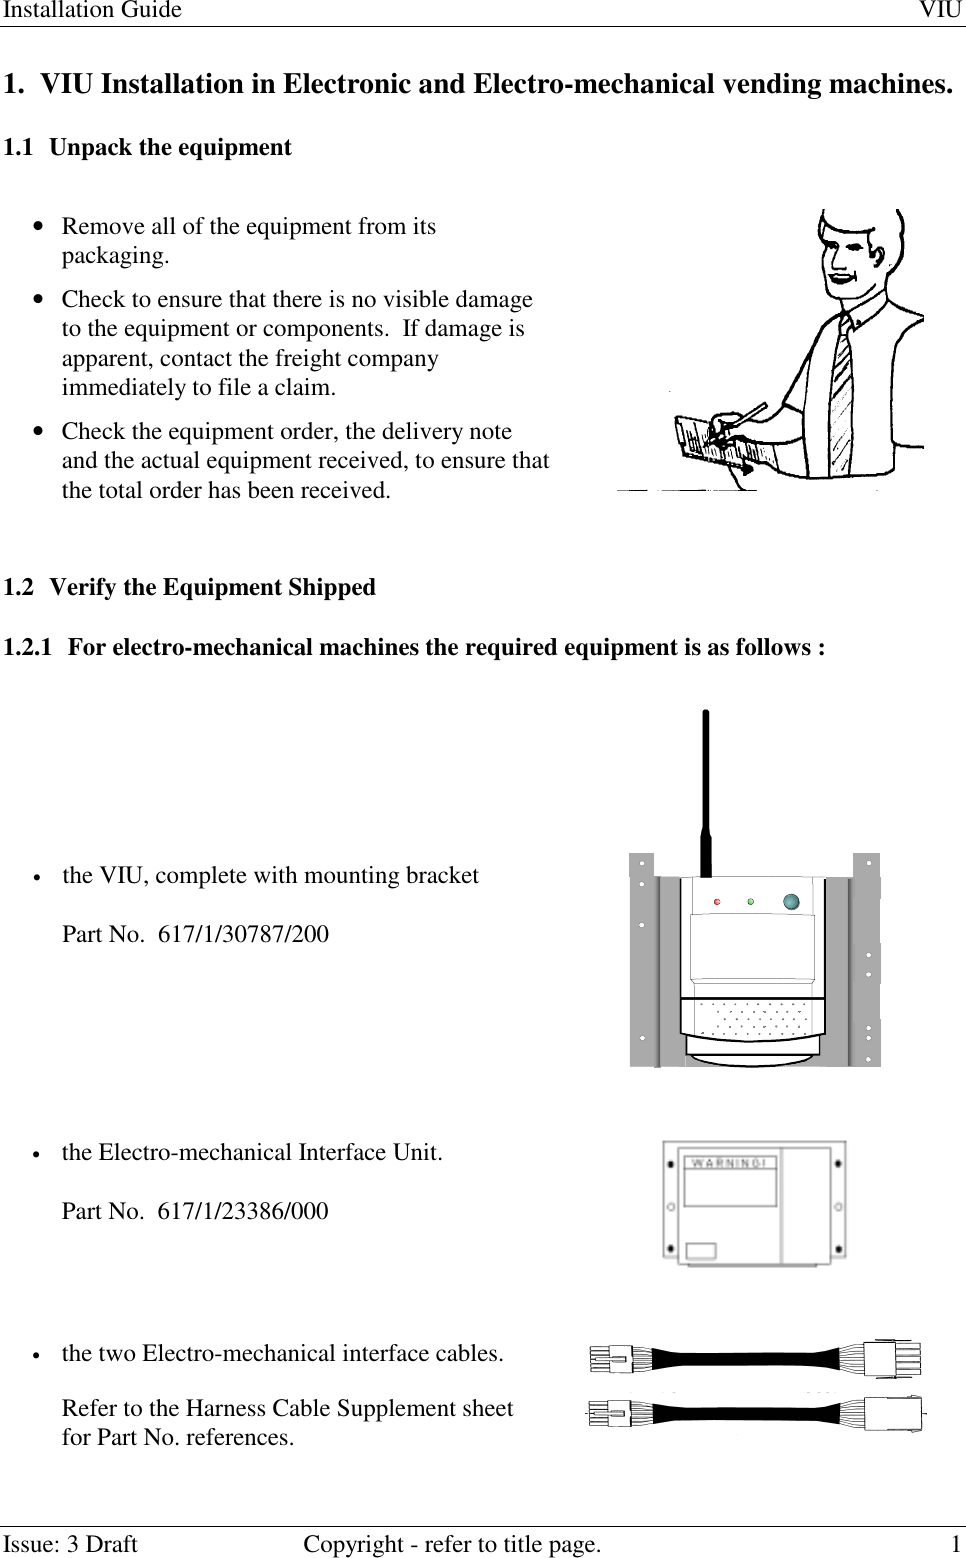 Gpt 001gpt Vending Machine Interface Transceiver User Manual Wiring Diagram Installation Guide Viuissue 3 Draft Copyright Refer To Title Page 11 Viu